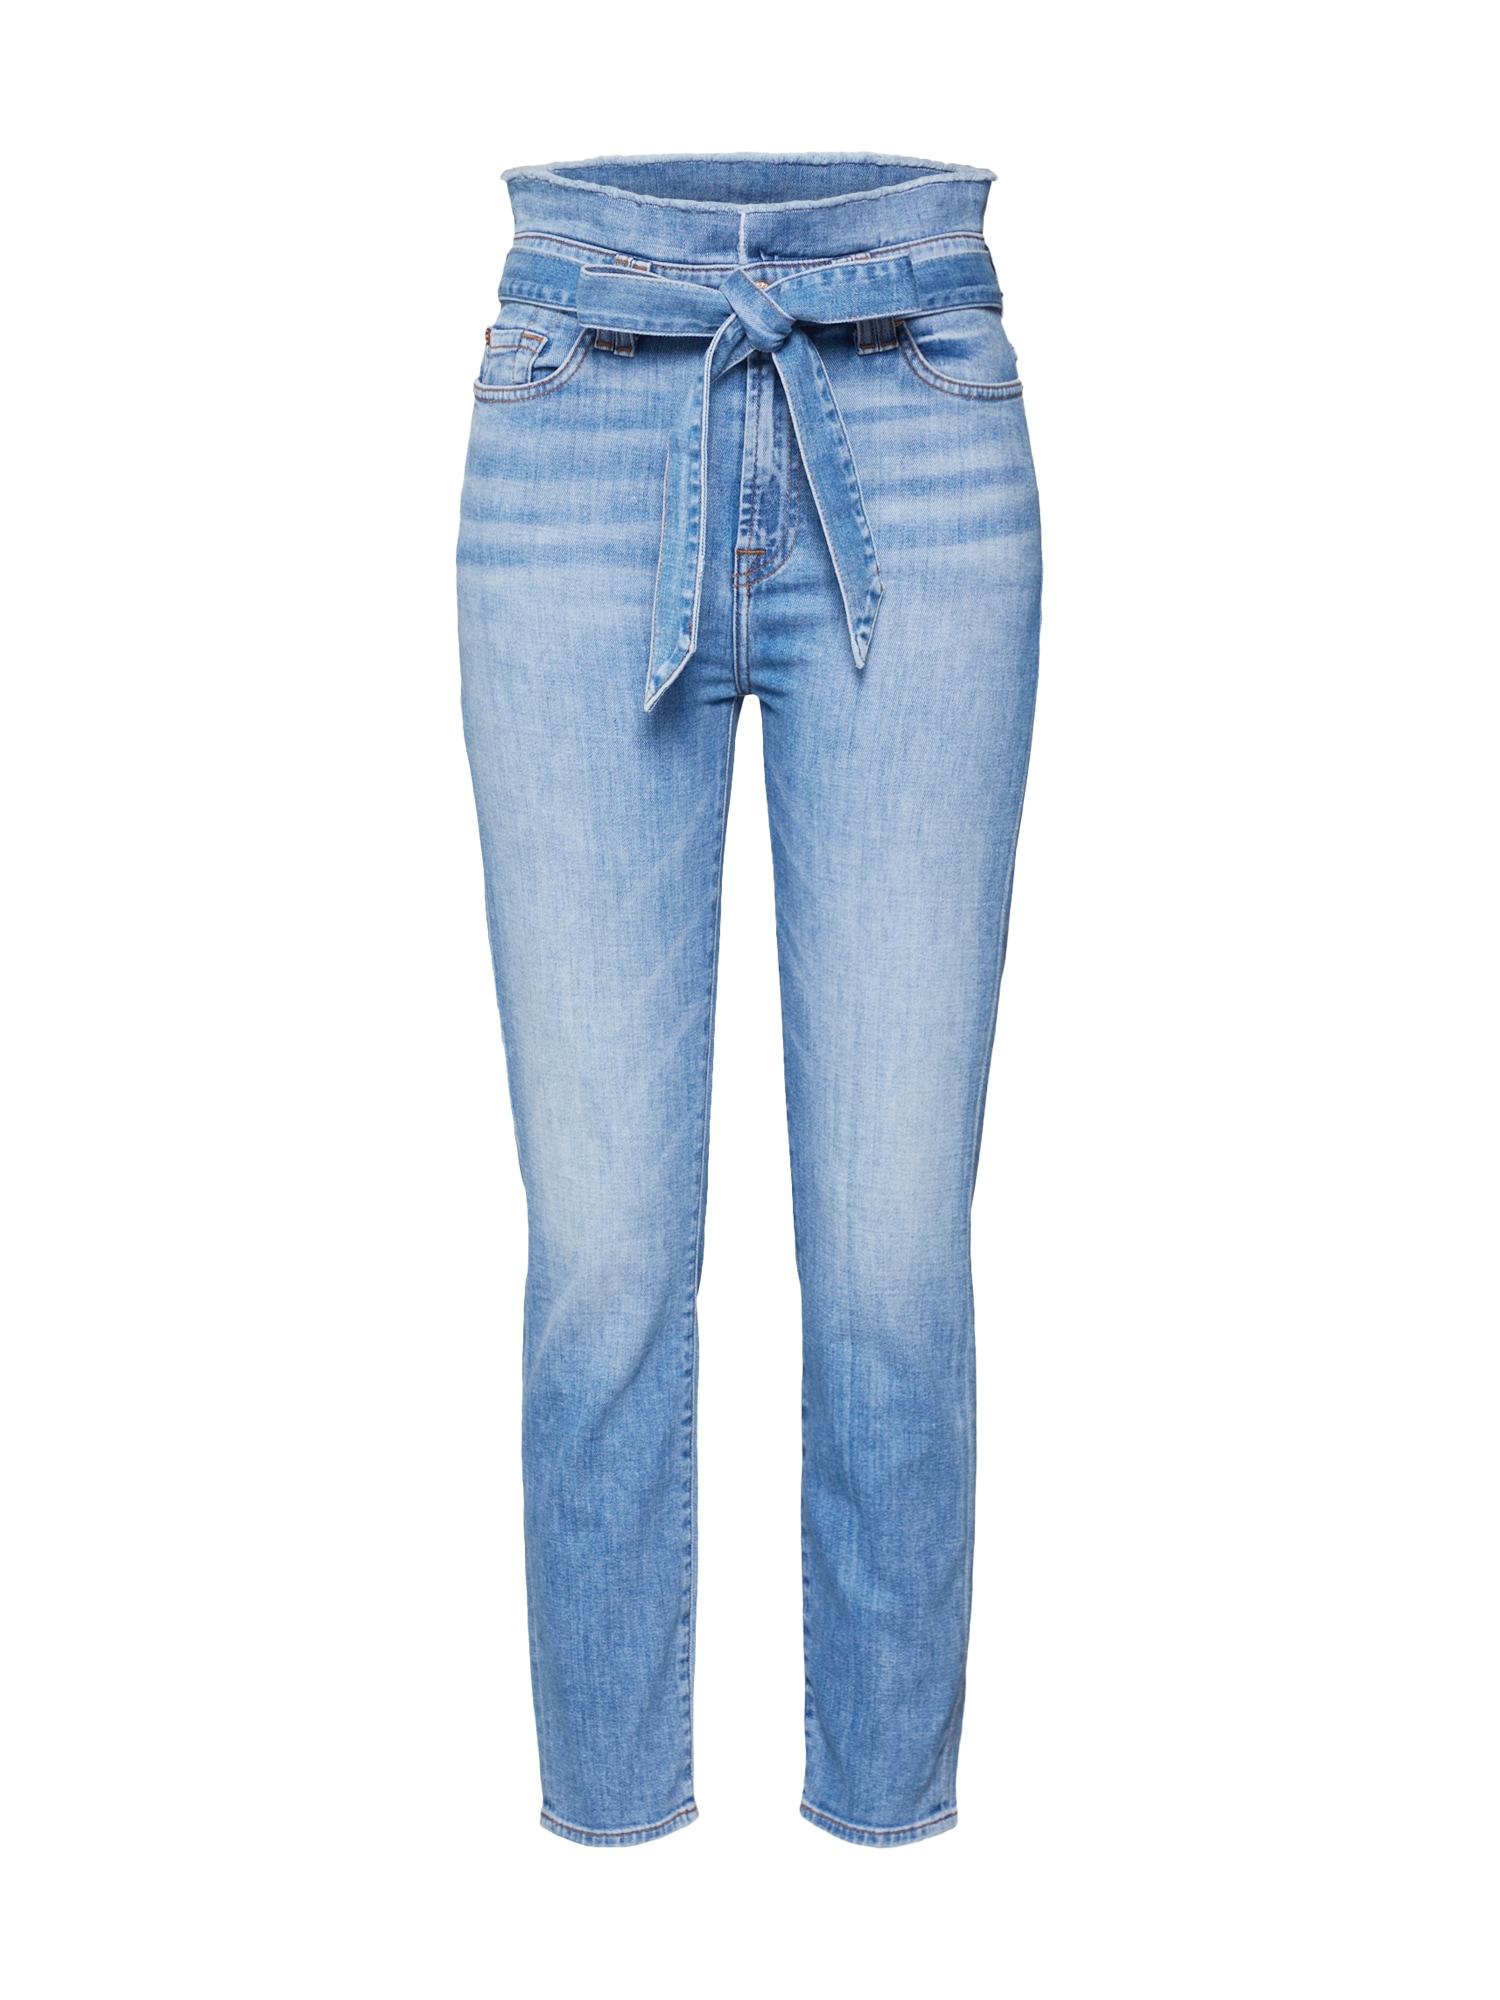 7 for all mankind Džinsai 'PAPERBAG WAIST PANT' tamsiai (džinso) mėlyna